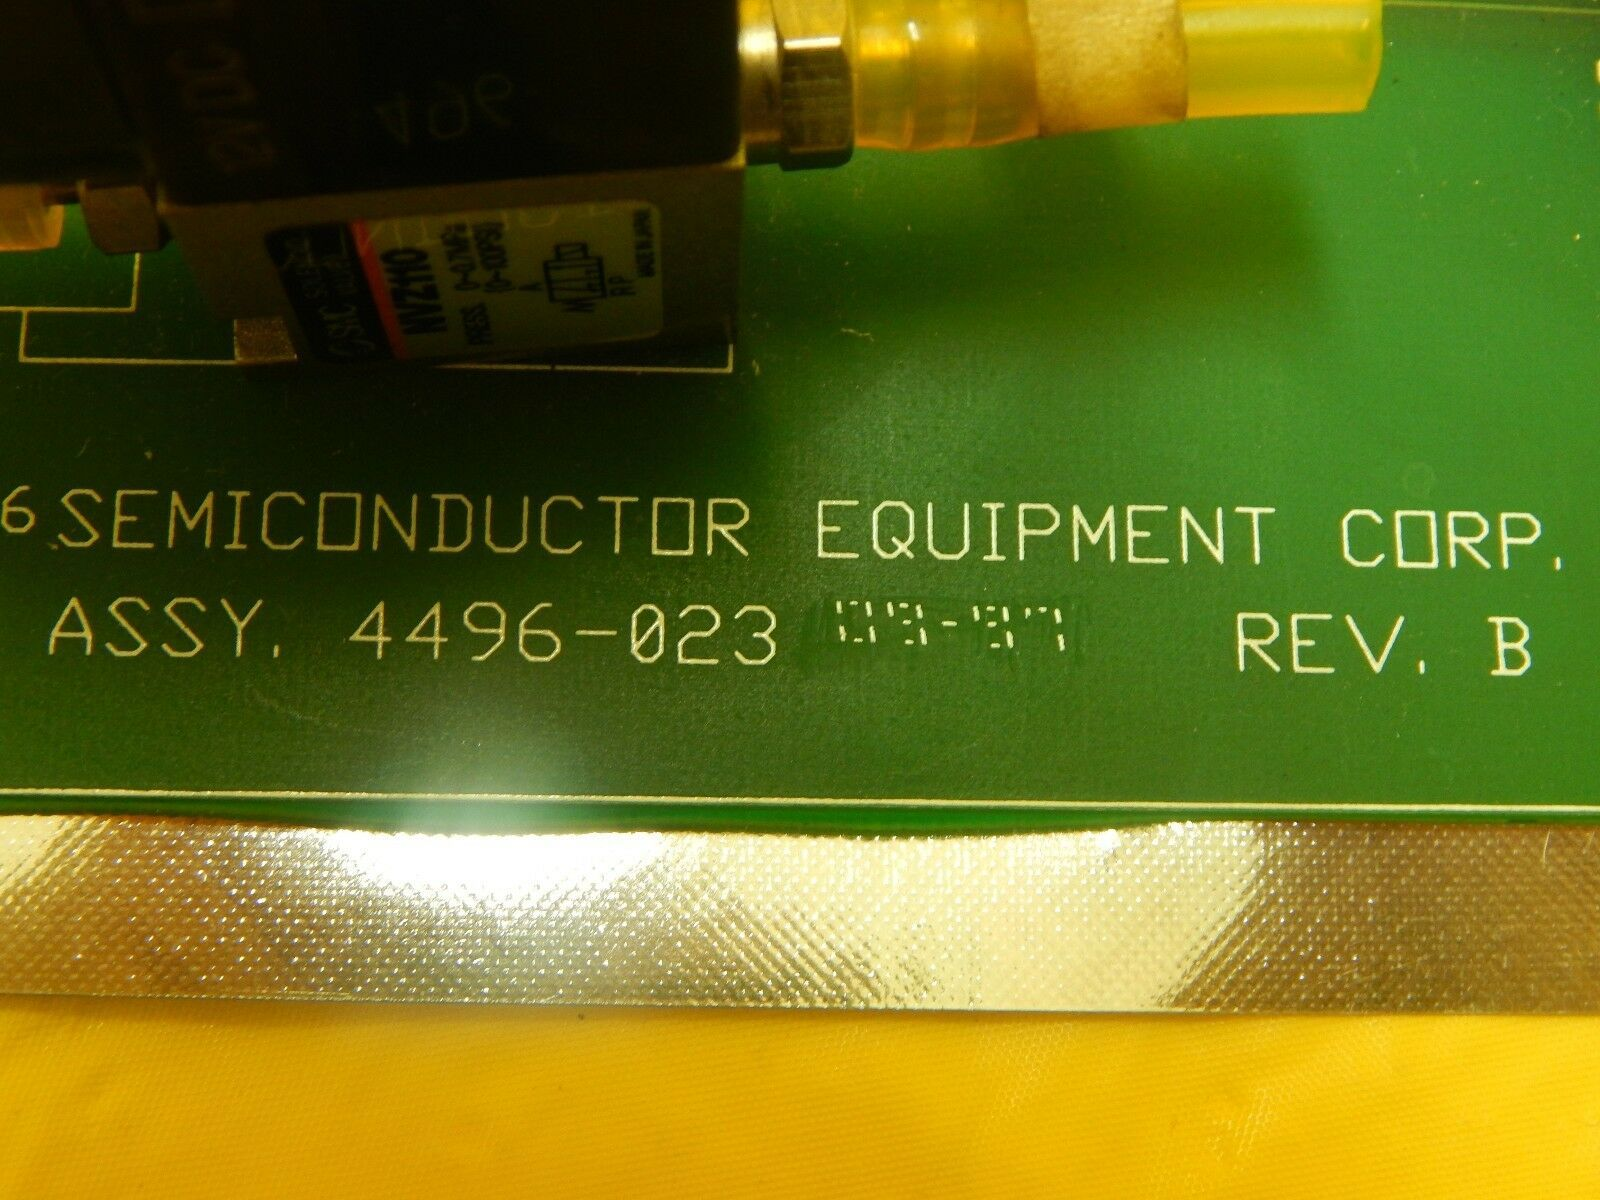 Semiconductor Equipment Corp 4496-023 Pneumatic Manifold PCB 410 Bonder Used